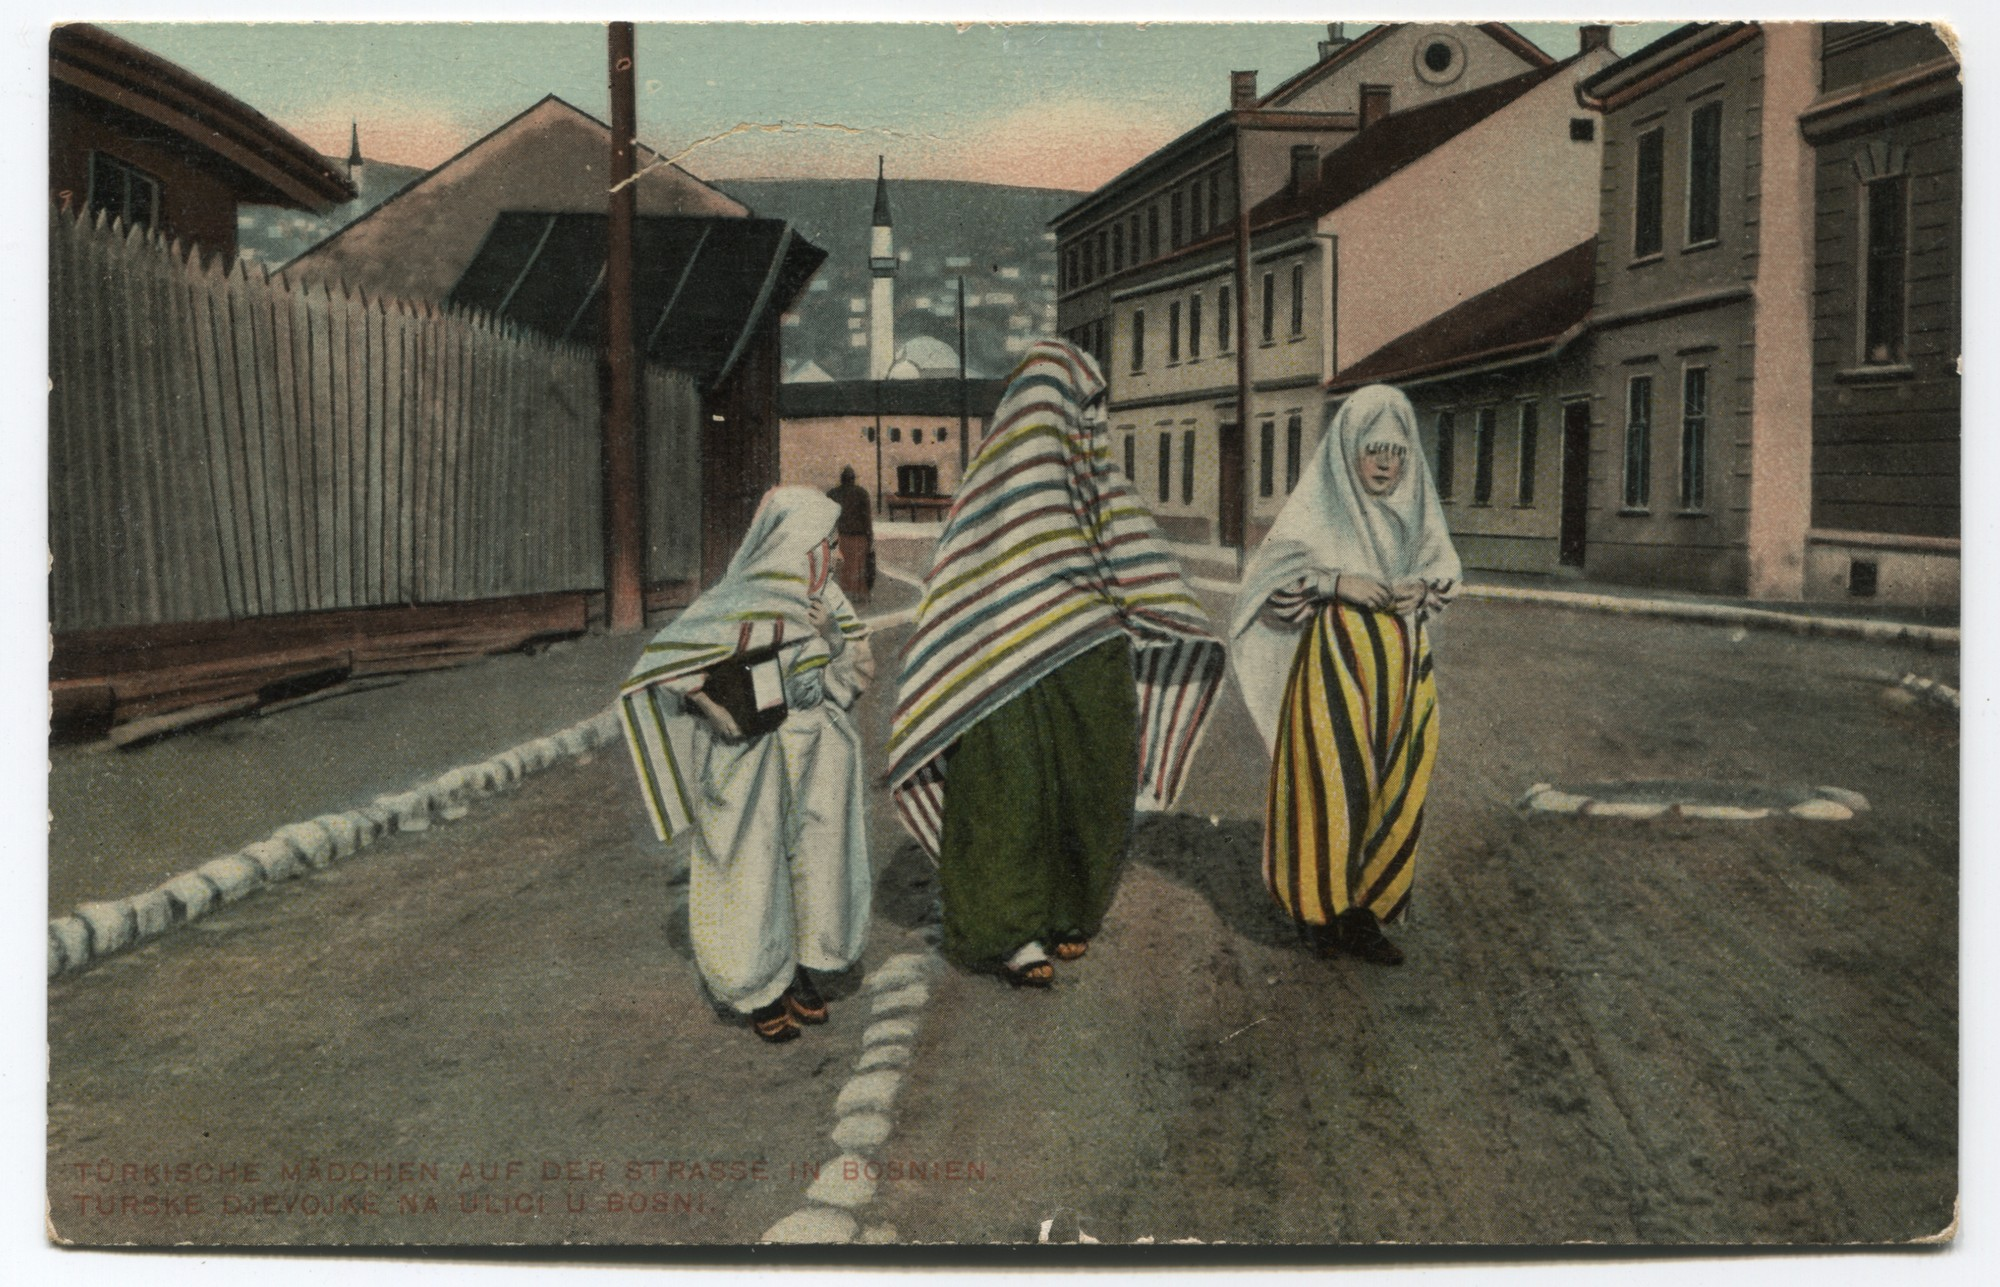 Muslim children walking in the street, © Museum of City of Sarajevo